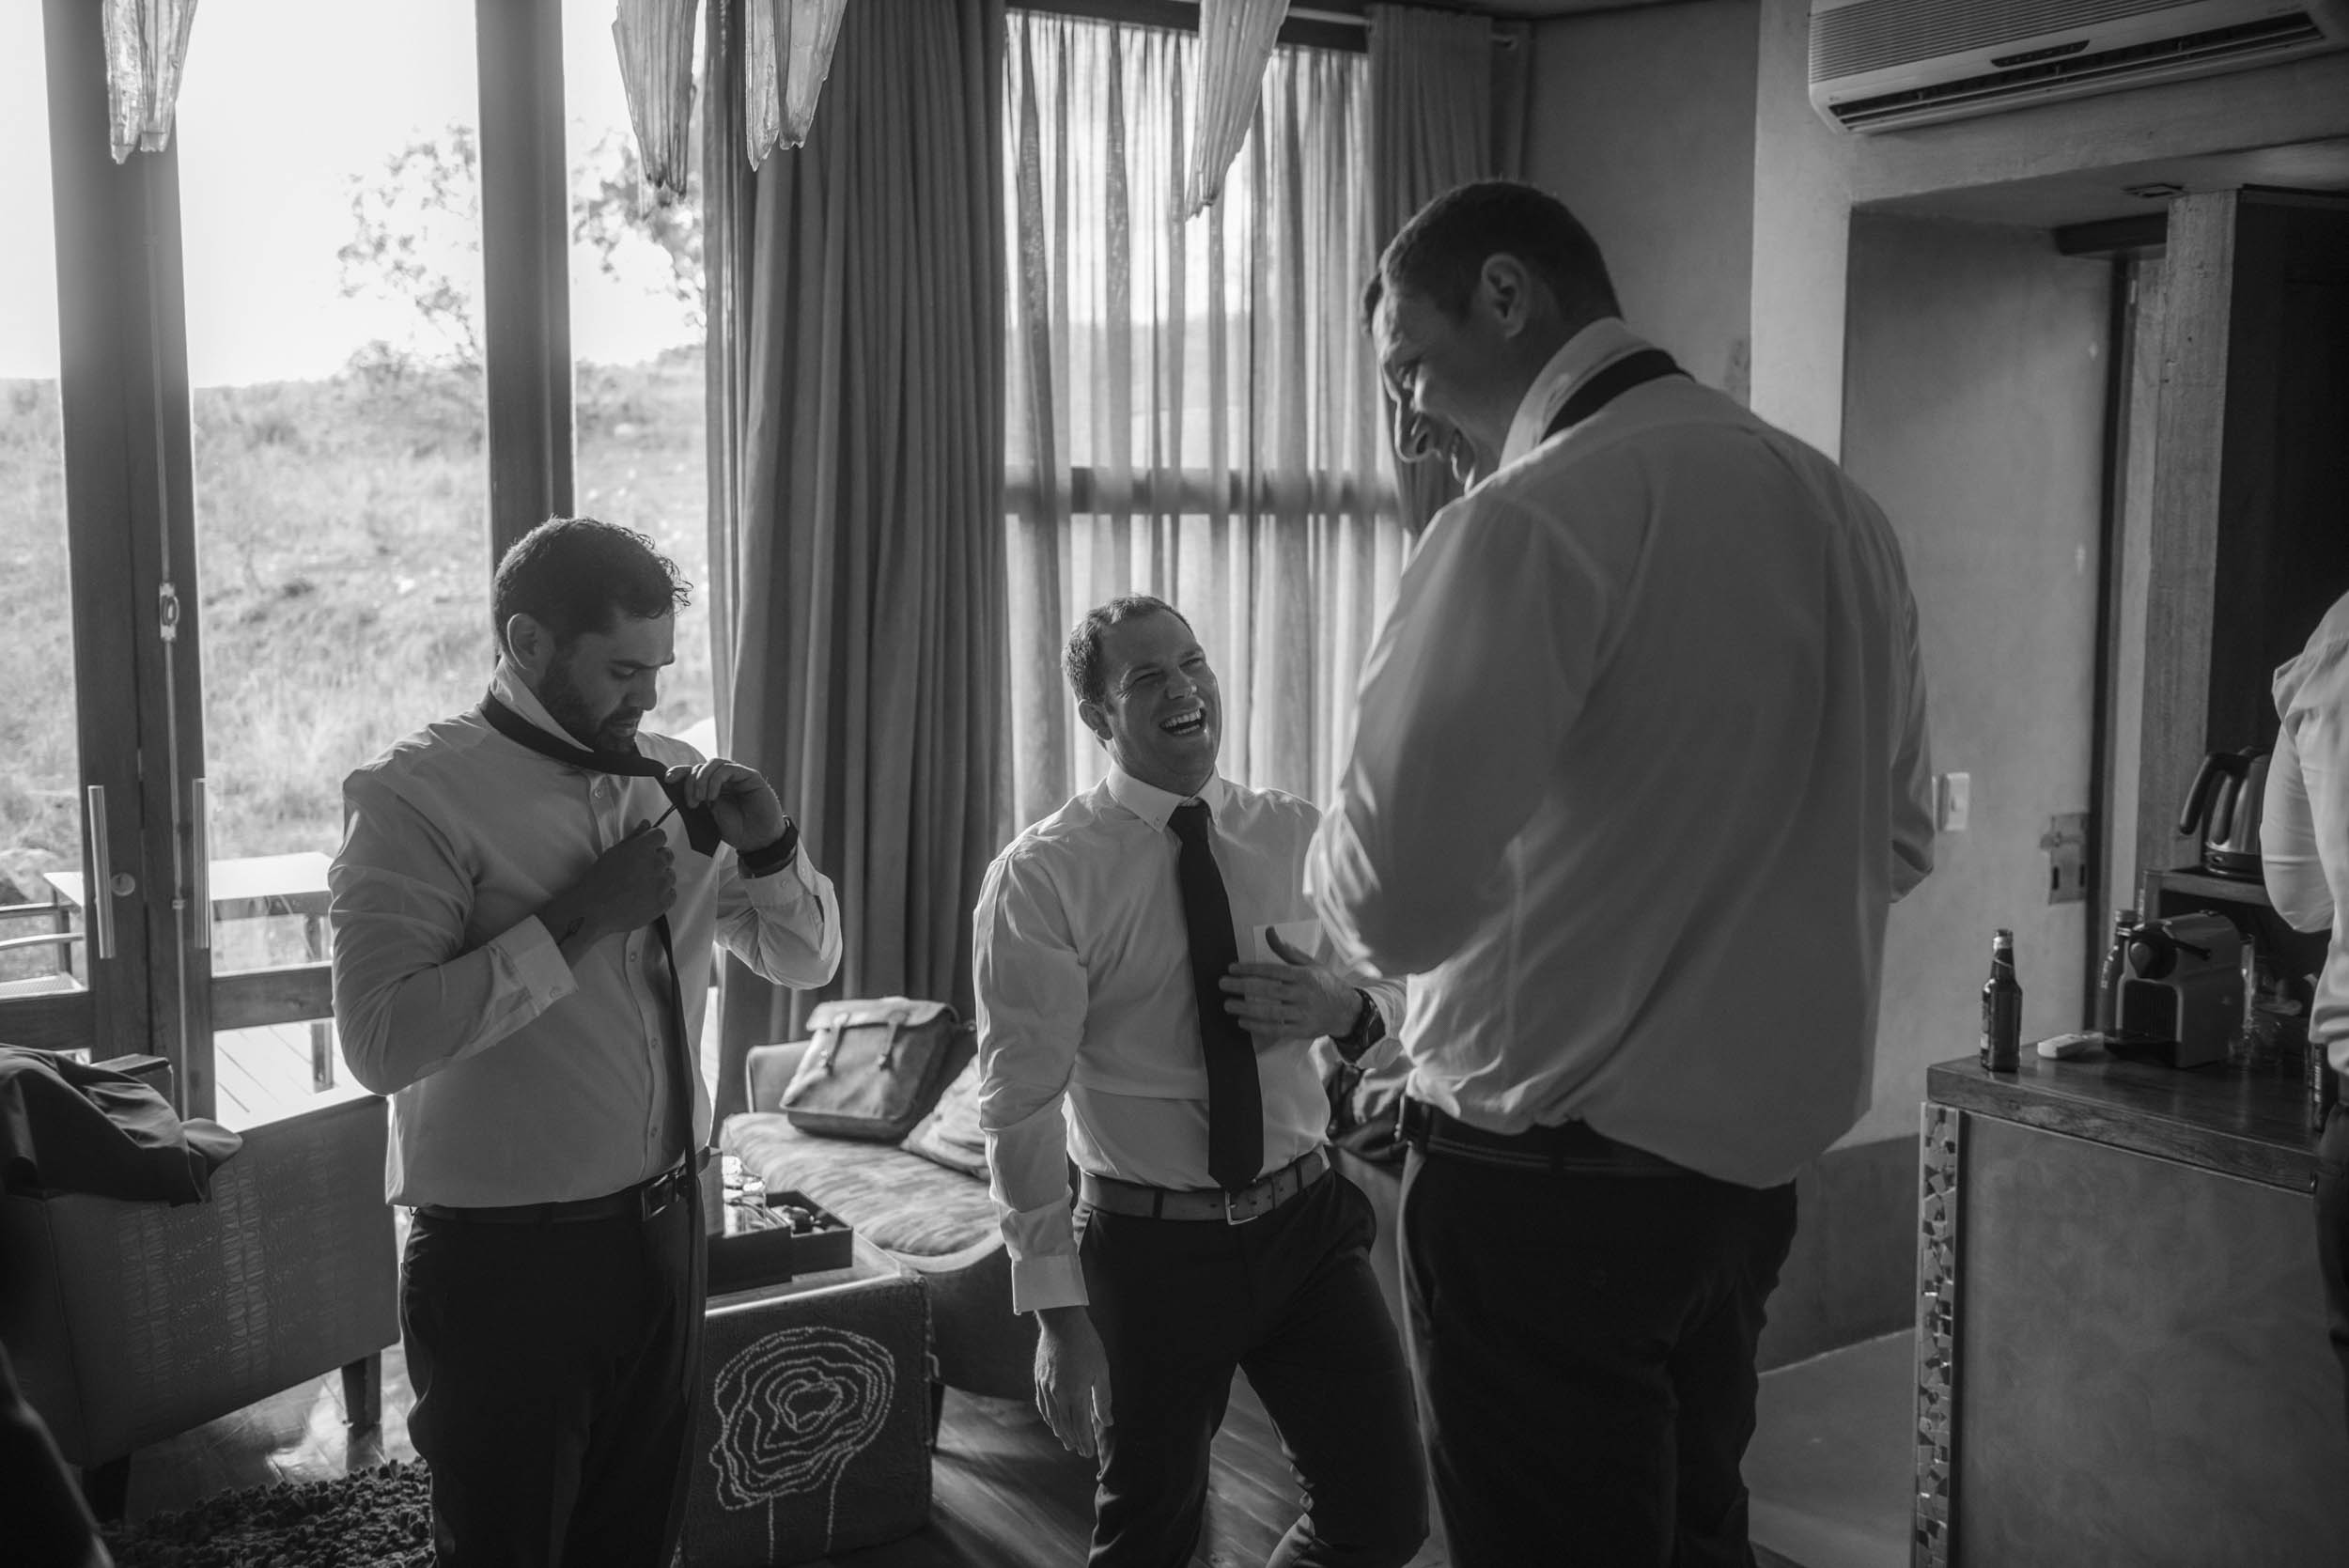 008-Pretoria-wedding-photographers.JPG